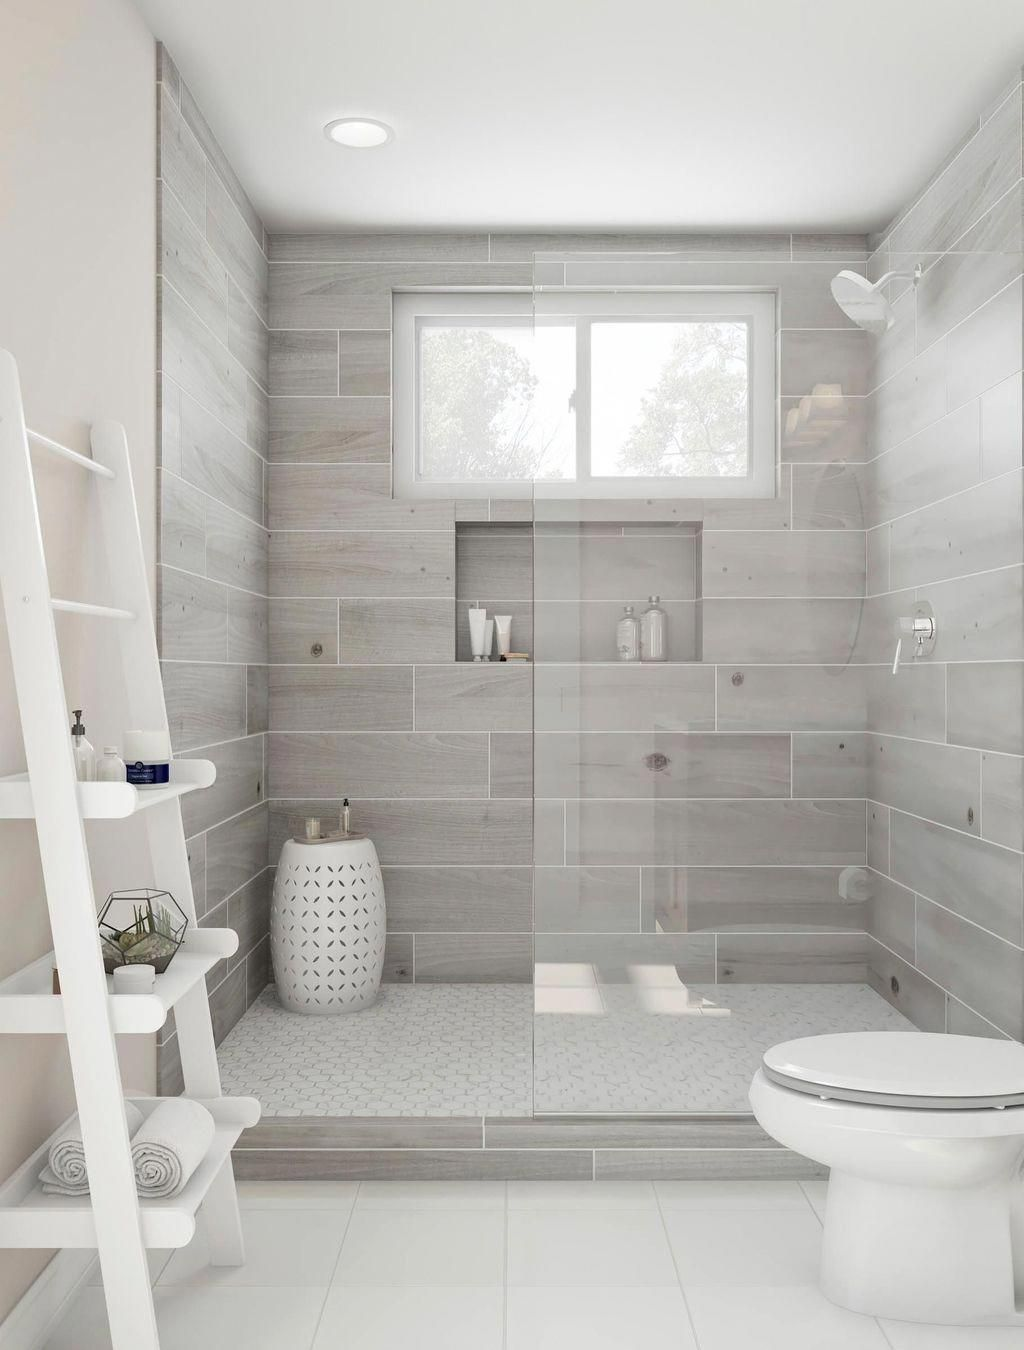 How Much Space Do You Need For A Bathroom Vanity Unique